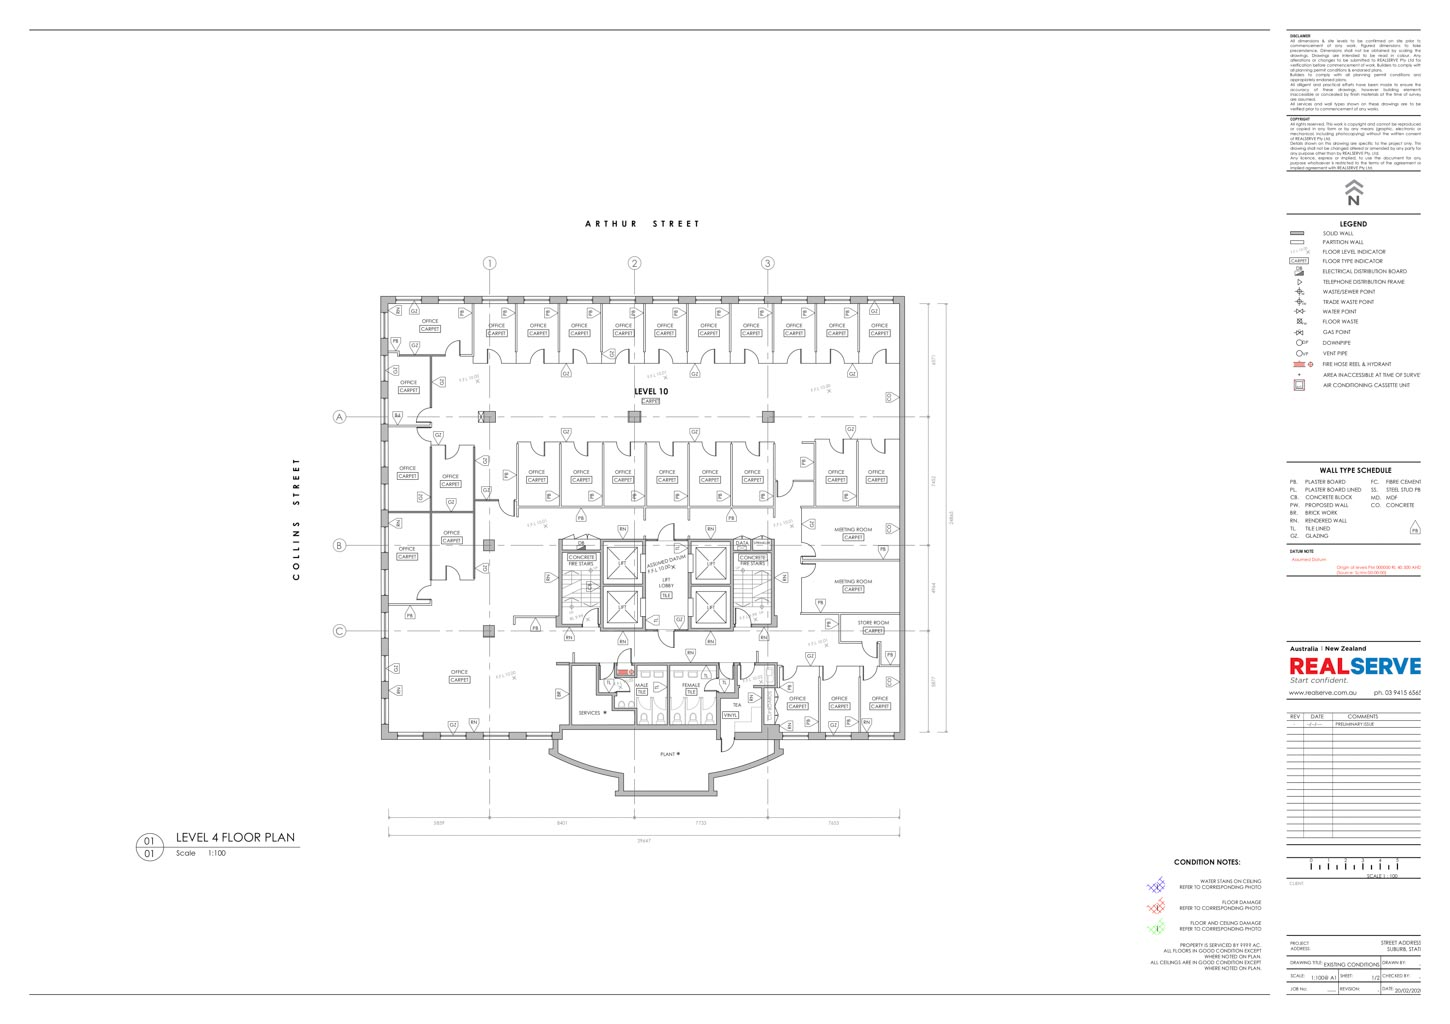 A SAMPLE OF AN EXISTING CONDITION FLOOR PLAN OF PROPERTY FROM REALSERVE